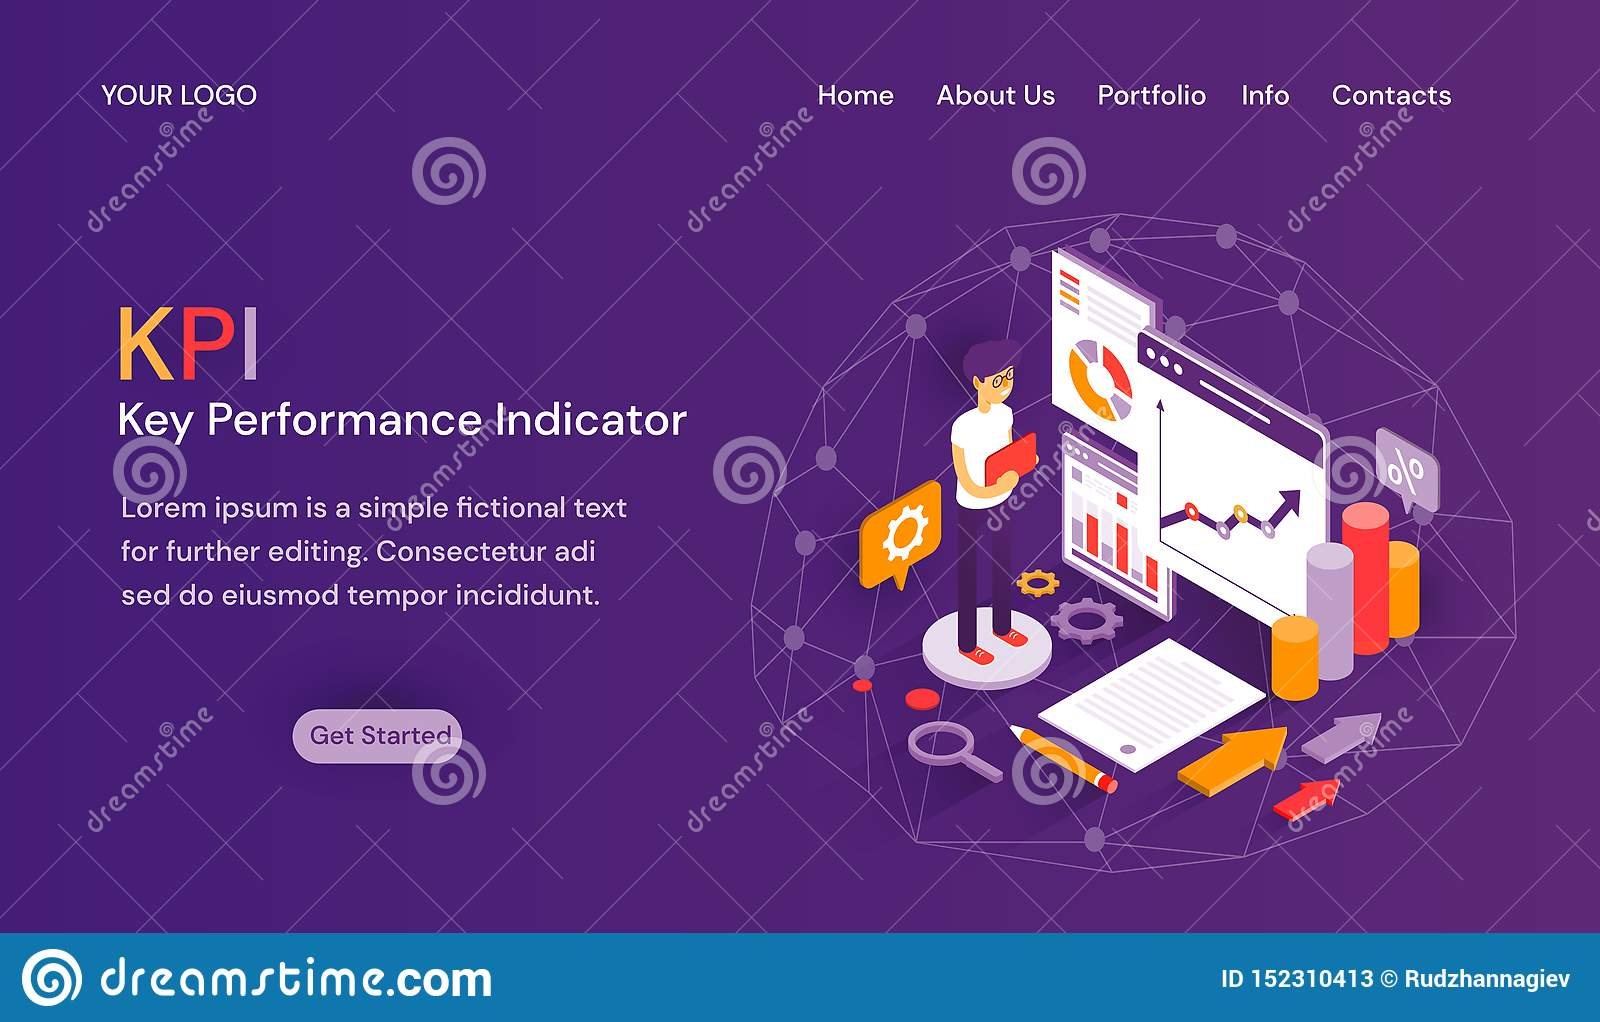 KPI Key Performance Indicator website template with header tabs, room for text above a Get Started button